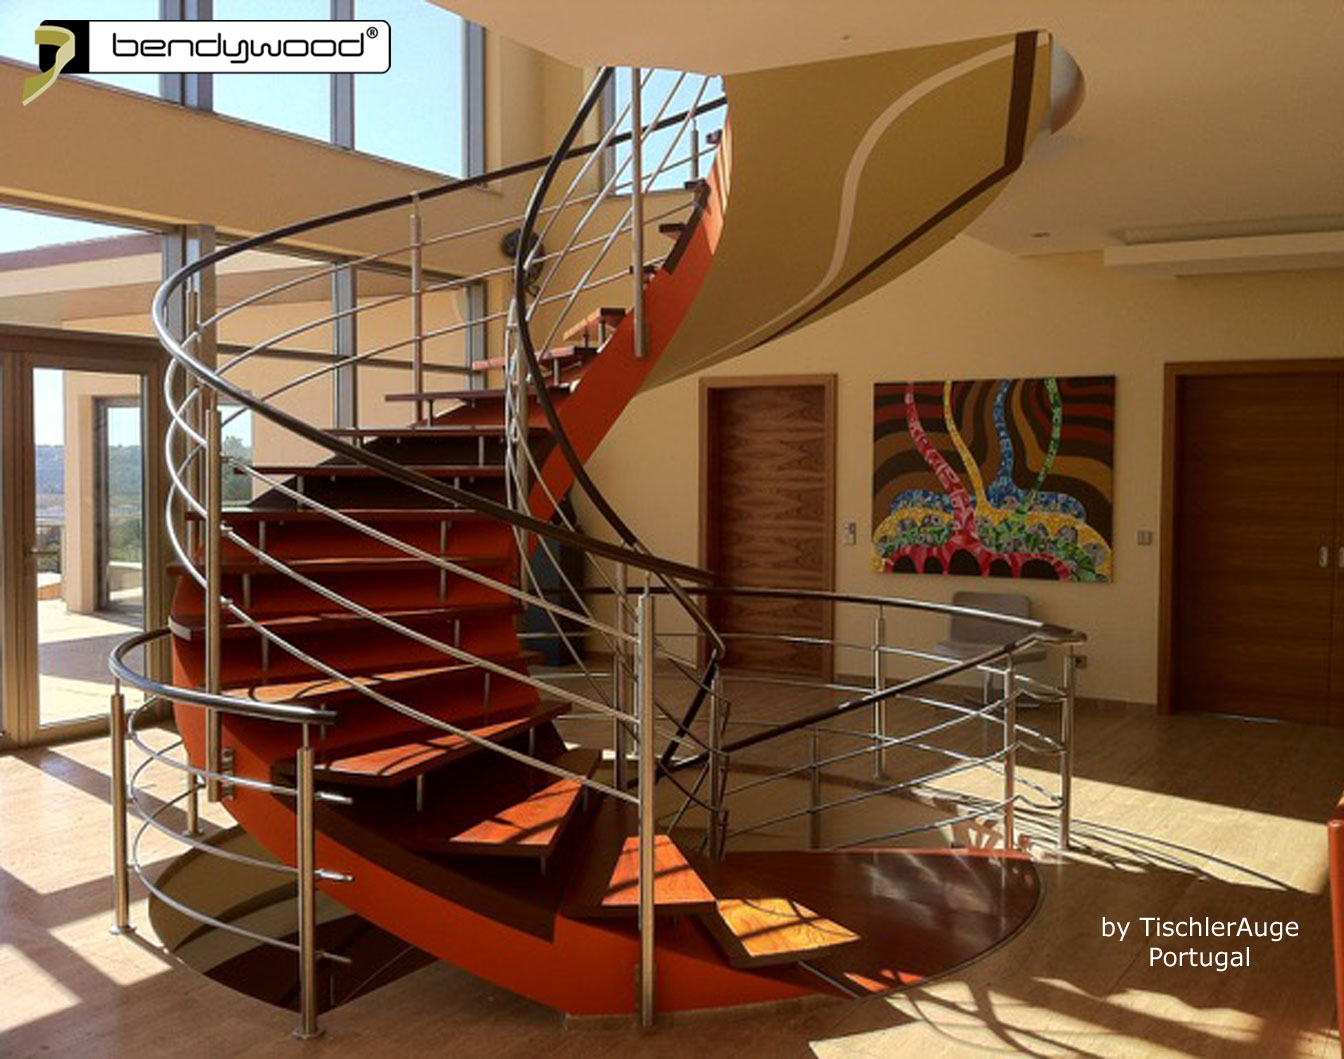 Bending wood Bendywood® - spiral staircase with curved wooden bending handrails